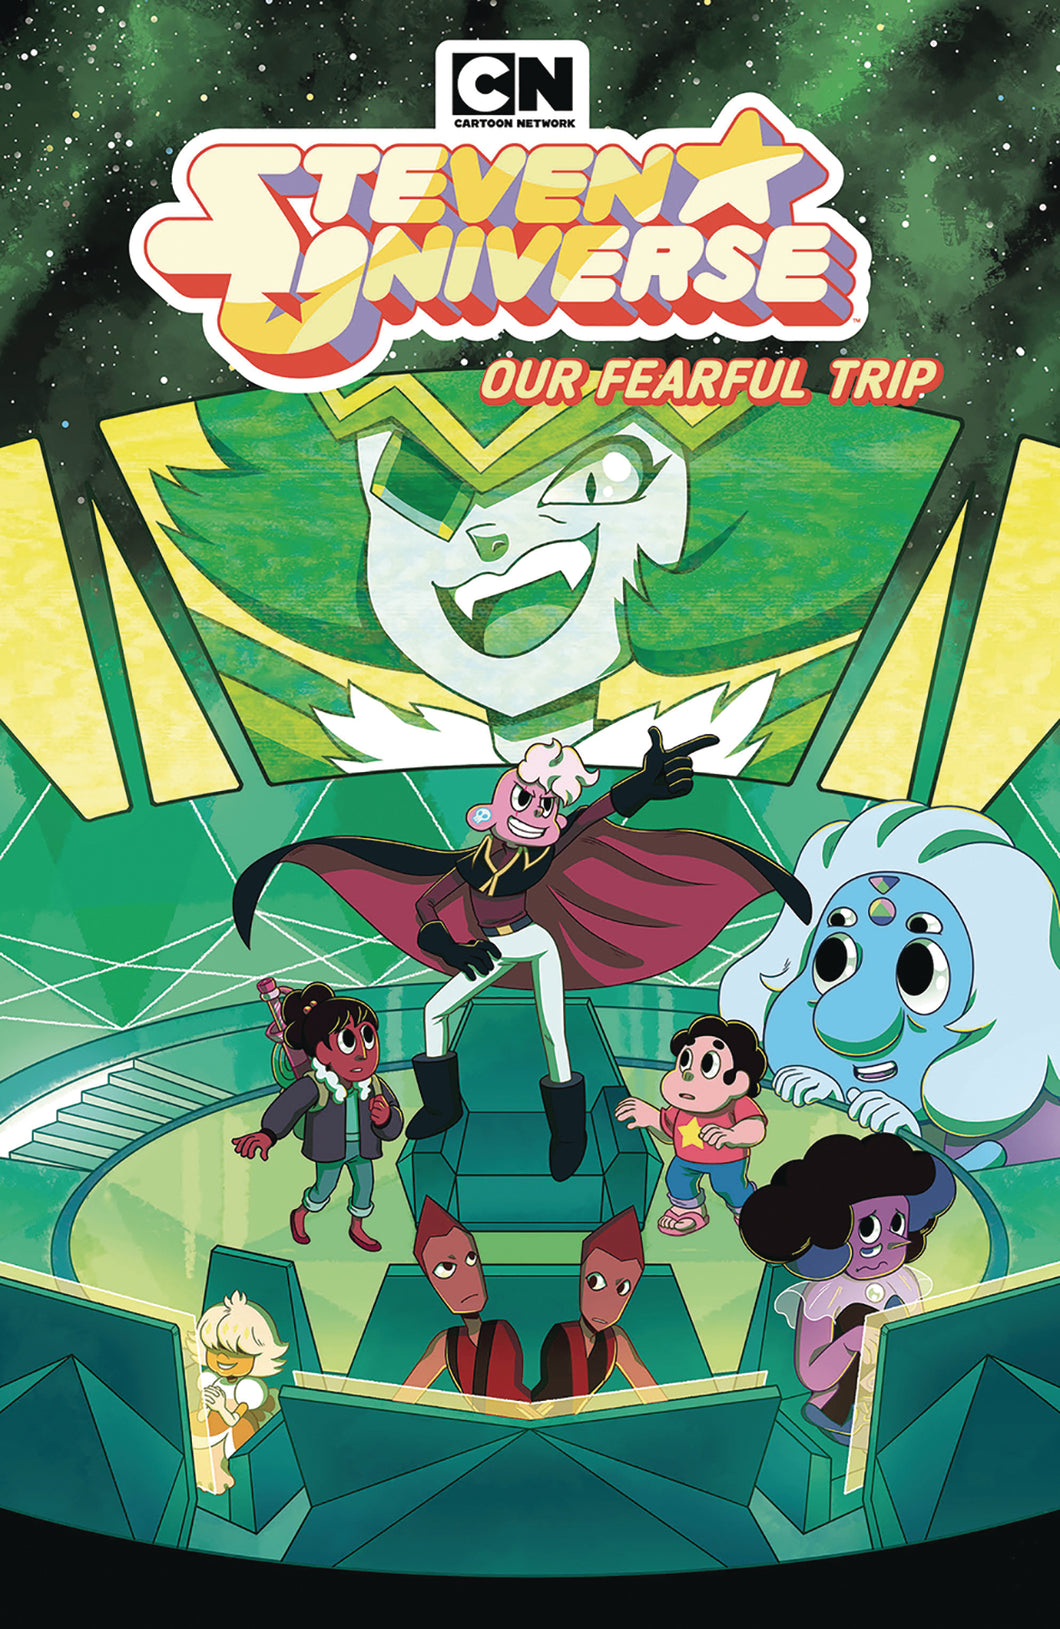 STEVEN UNIVERSE ONGOING TP VOL 07 OUR FEARFUL TRIP